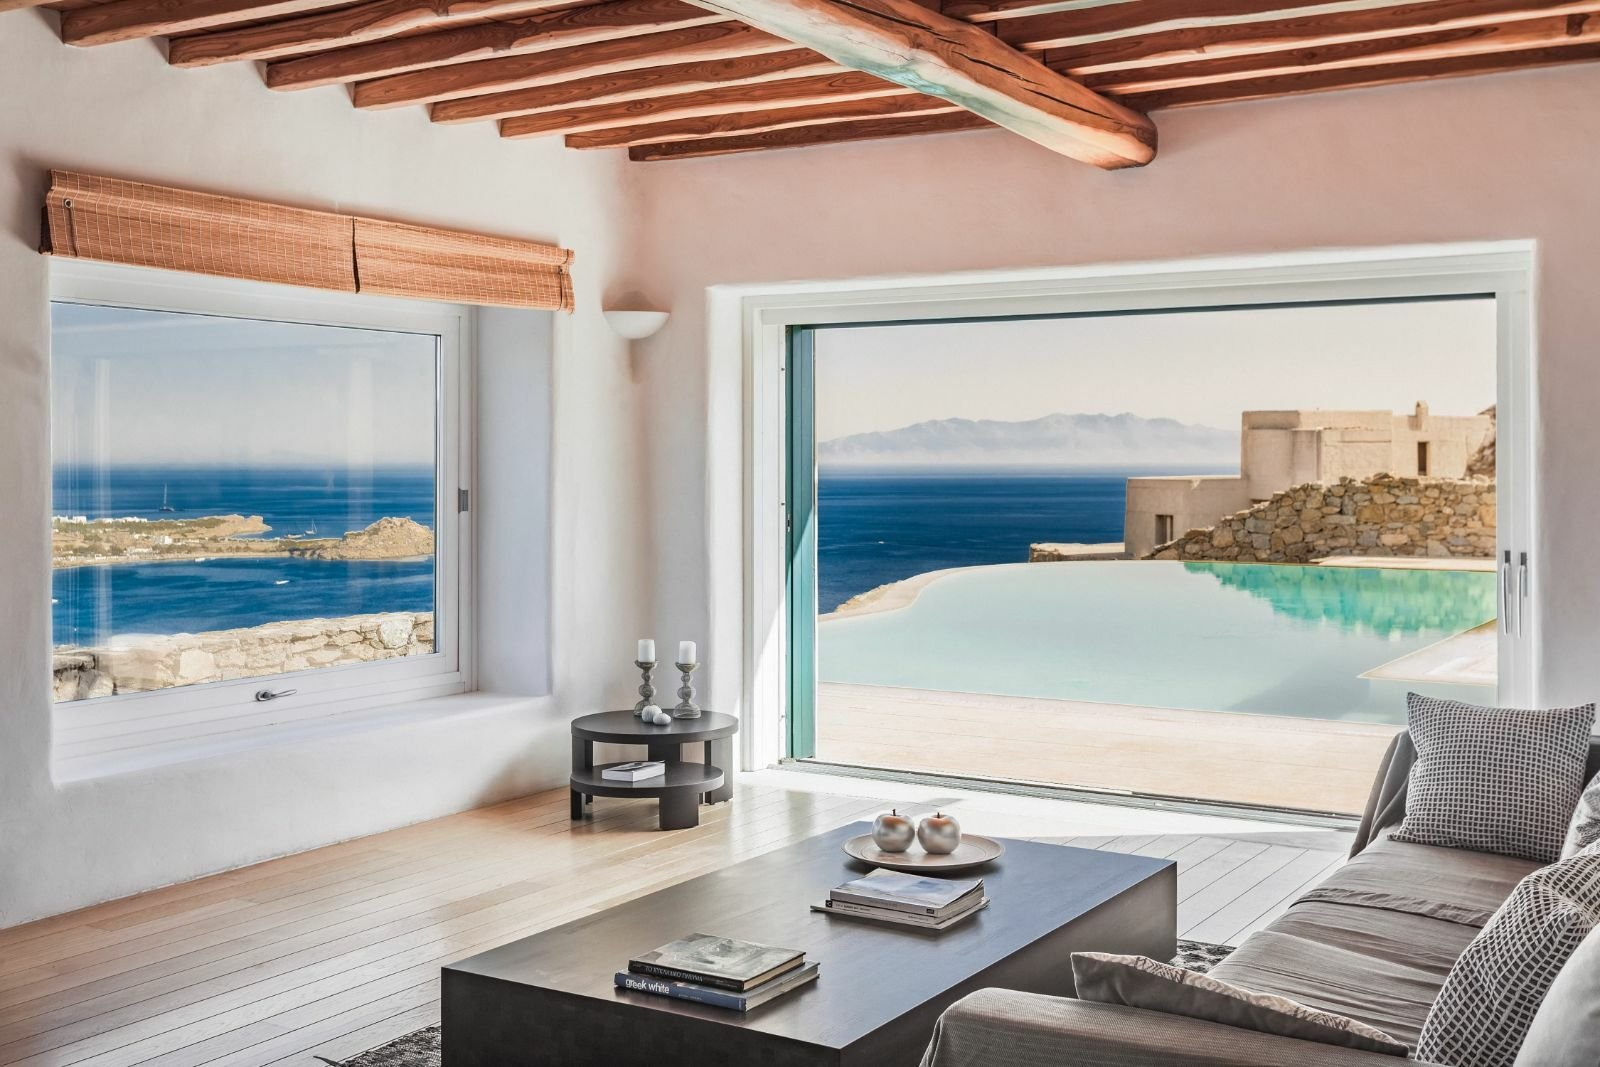 Villa in Decentralized Administration of the Aegean, Greece 1 - 11398941